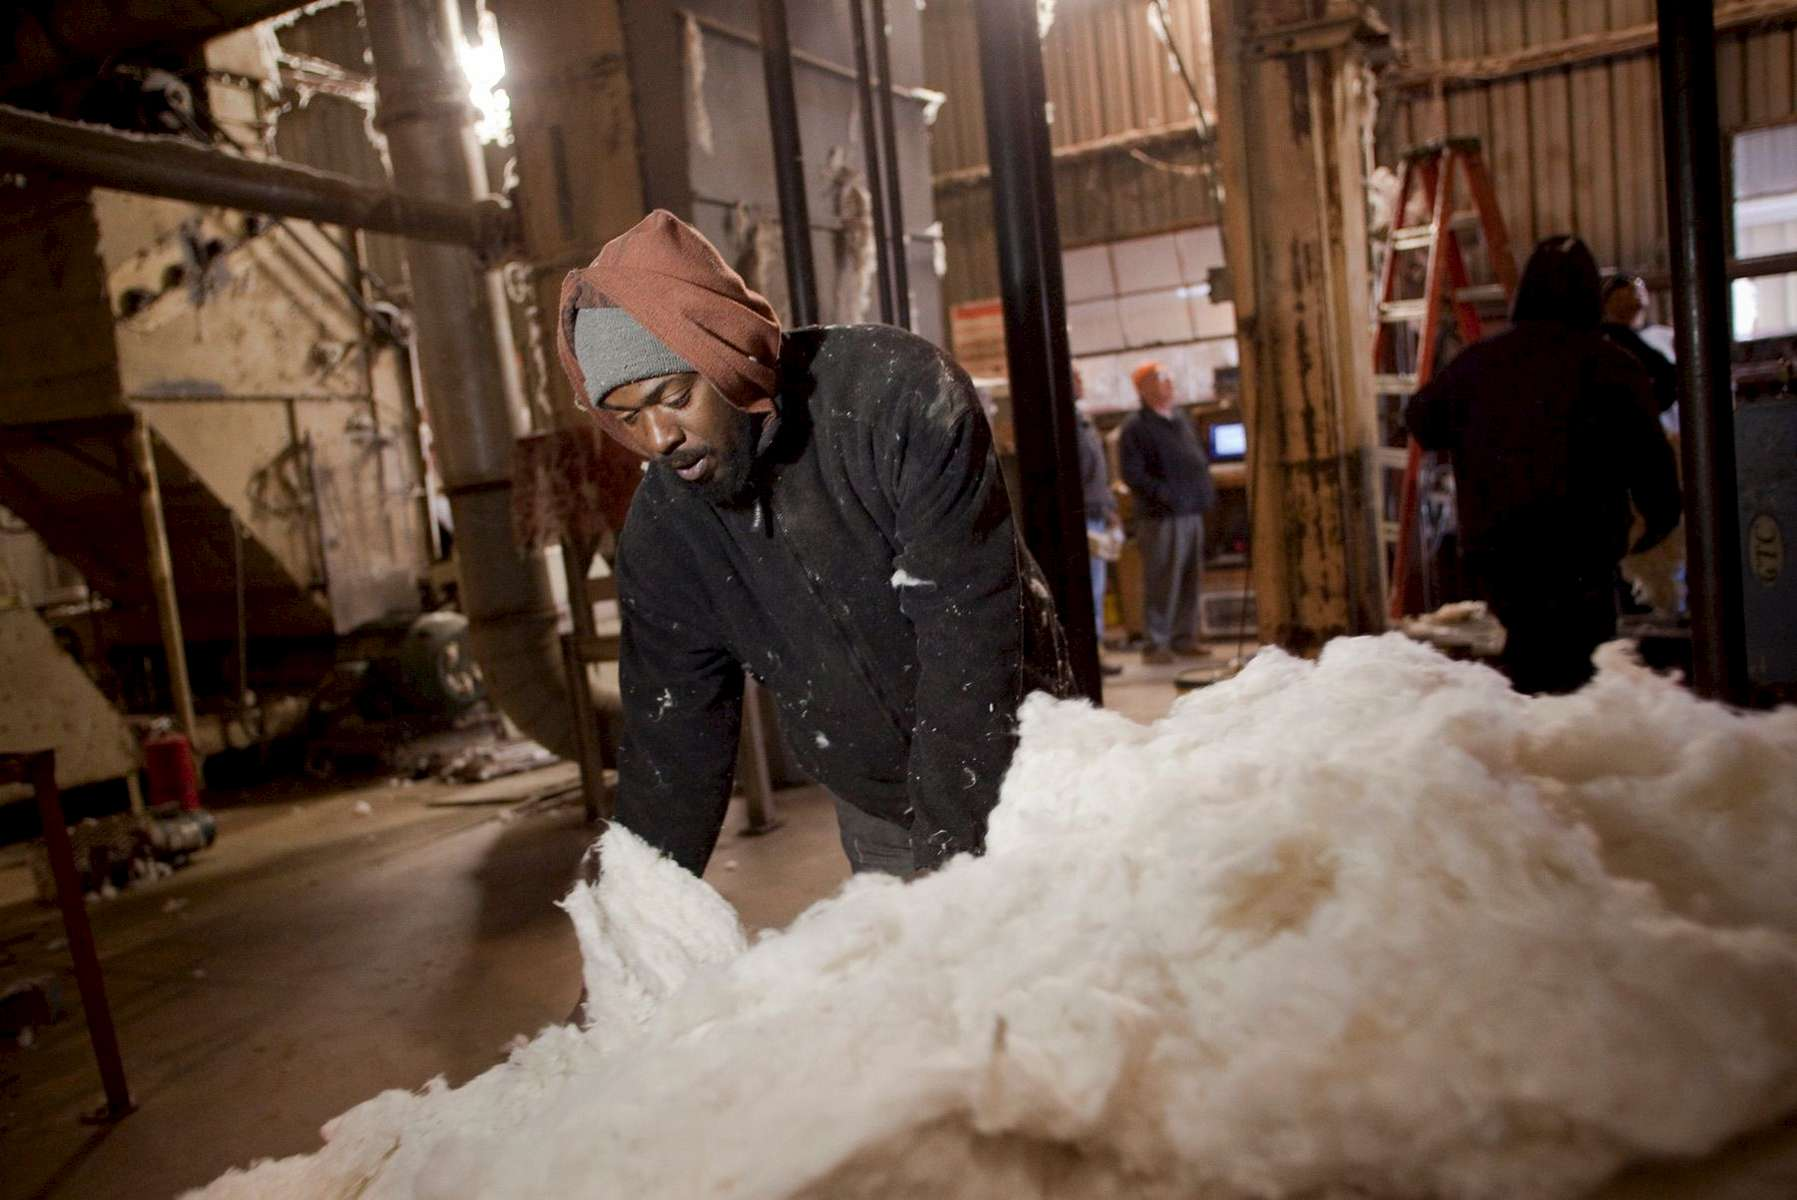 Bagger Chon Thompson sorts through ginned and cleaned cotton at the Minturn Cotton Company in Minturn, South Carolina November 27, 2012. The facility gins cotton after it is harvested to remove the seeds and packages it for shipment. About 80 percent of the cotton ginned at this facility is exported outside the United States.   REUTERS/Randall Hill (UNITED STATES)